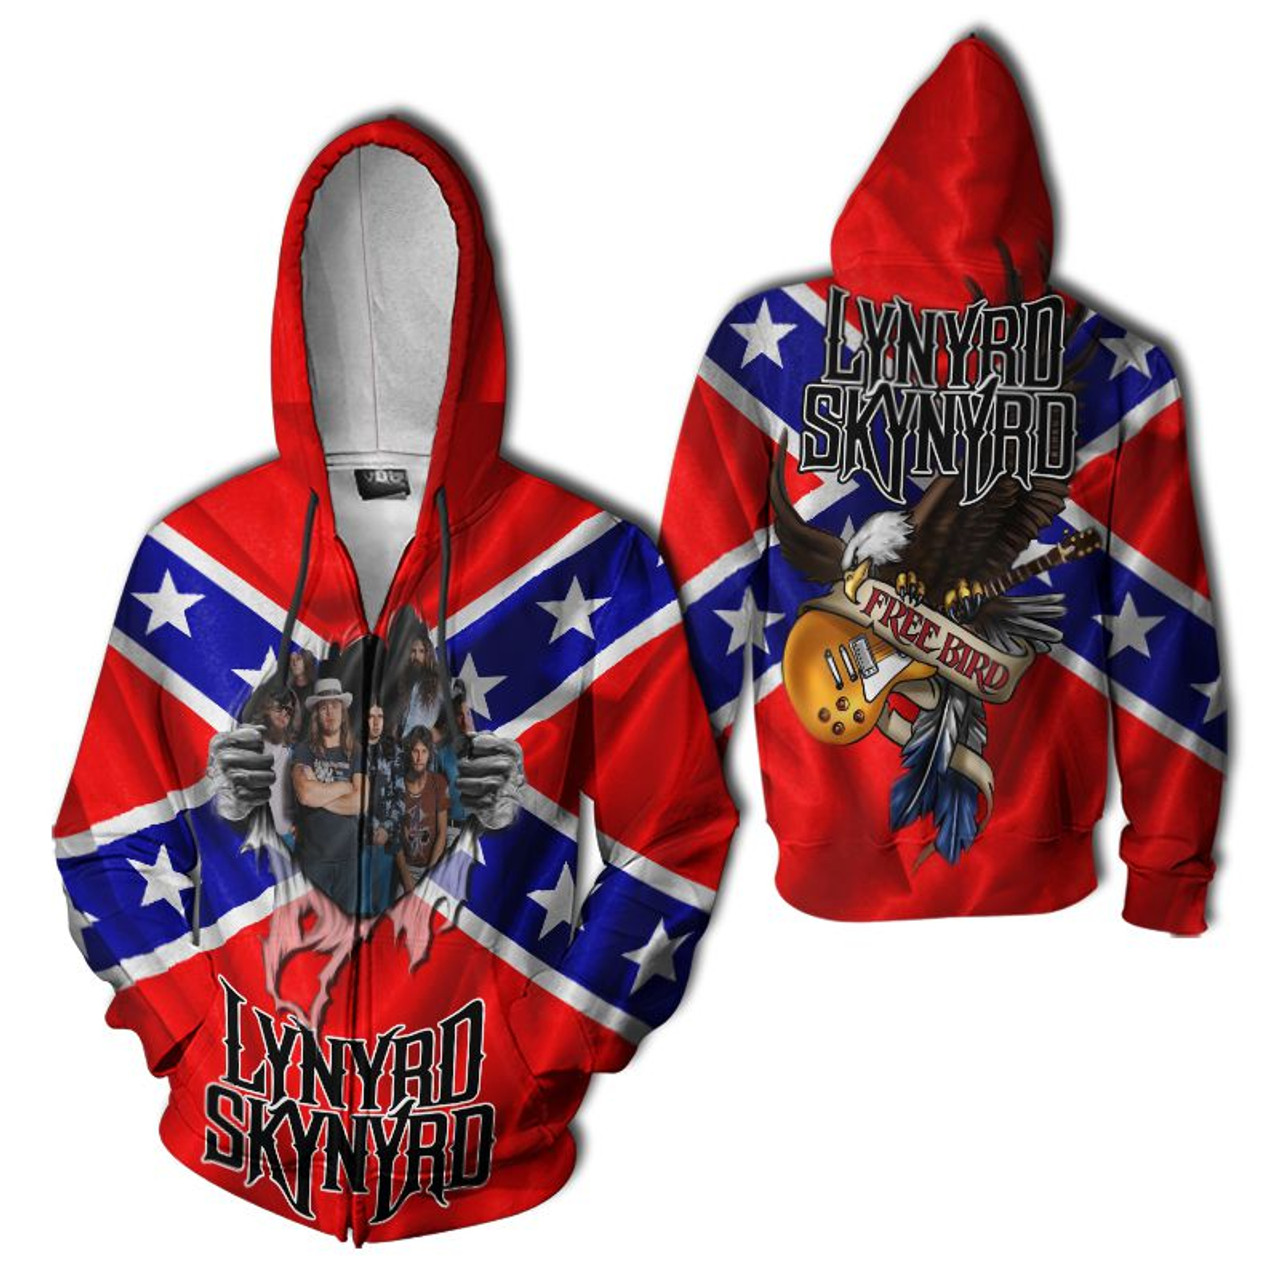 **(OFFICIAL-LYNYRD-SKYNYRD-FREE-BIRD-ZIPPERED-HOODIES/DEEP-ROOTED-SOUTHERN-CLASSIC-REBEL-FLAG/NICE-CUSTOM-3D-GRAPHIC-PRINTED-DOUBLE-SIDED-DESIGN/WARM-PREMIUM-OFFICIAL-LYNYRD-SKYNYRD-CONCERT-ZIPPERED-POCKET-HOODIES)**